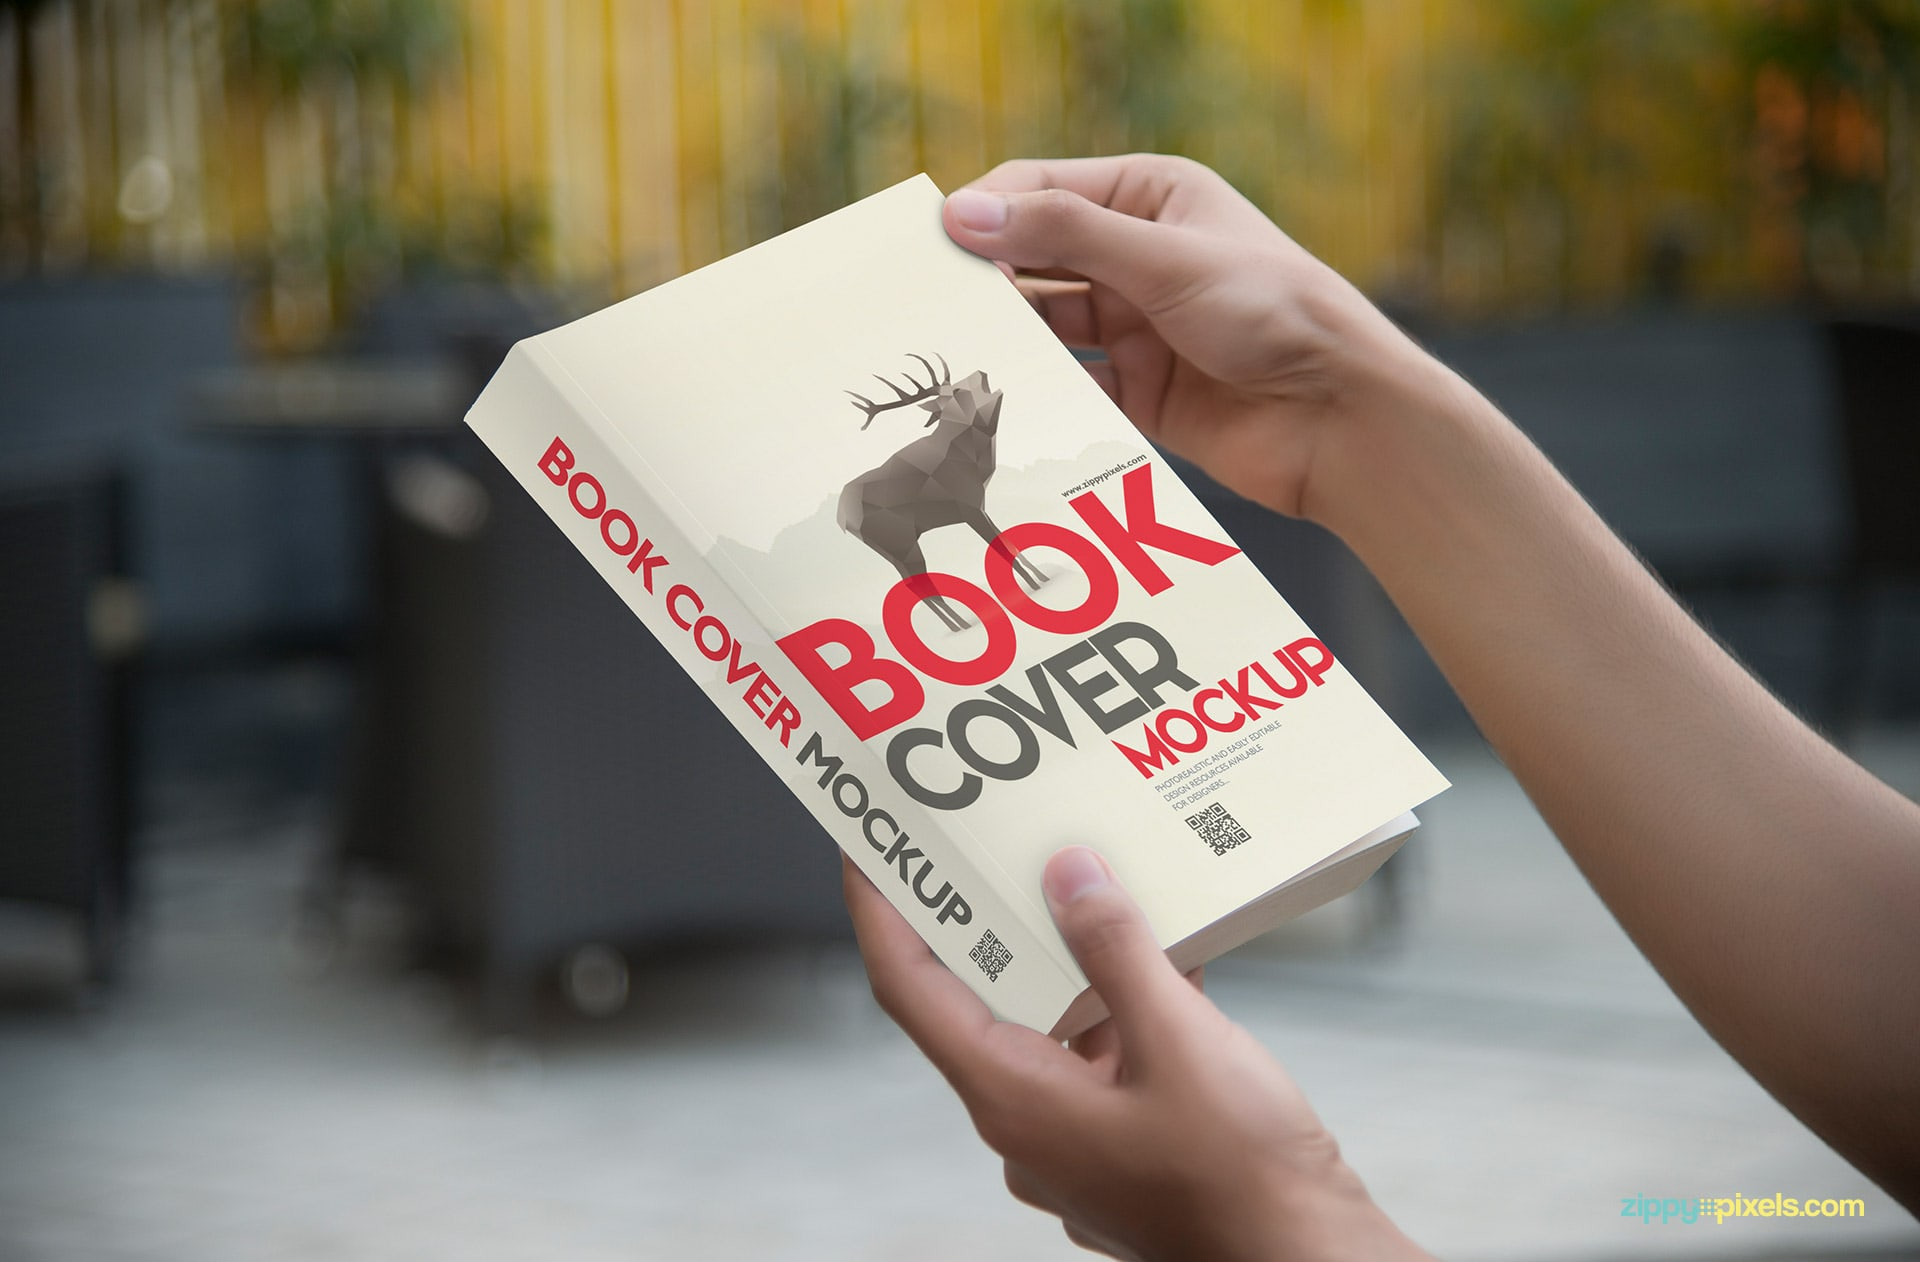 Mockup of softcover book held in hands showing front cover in a closeup